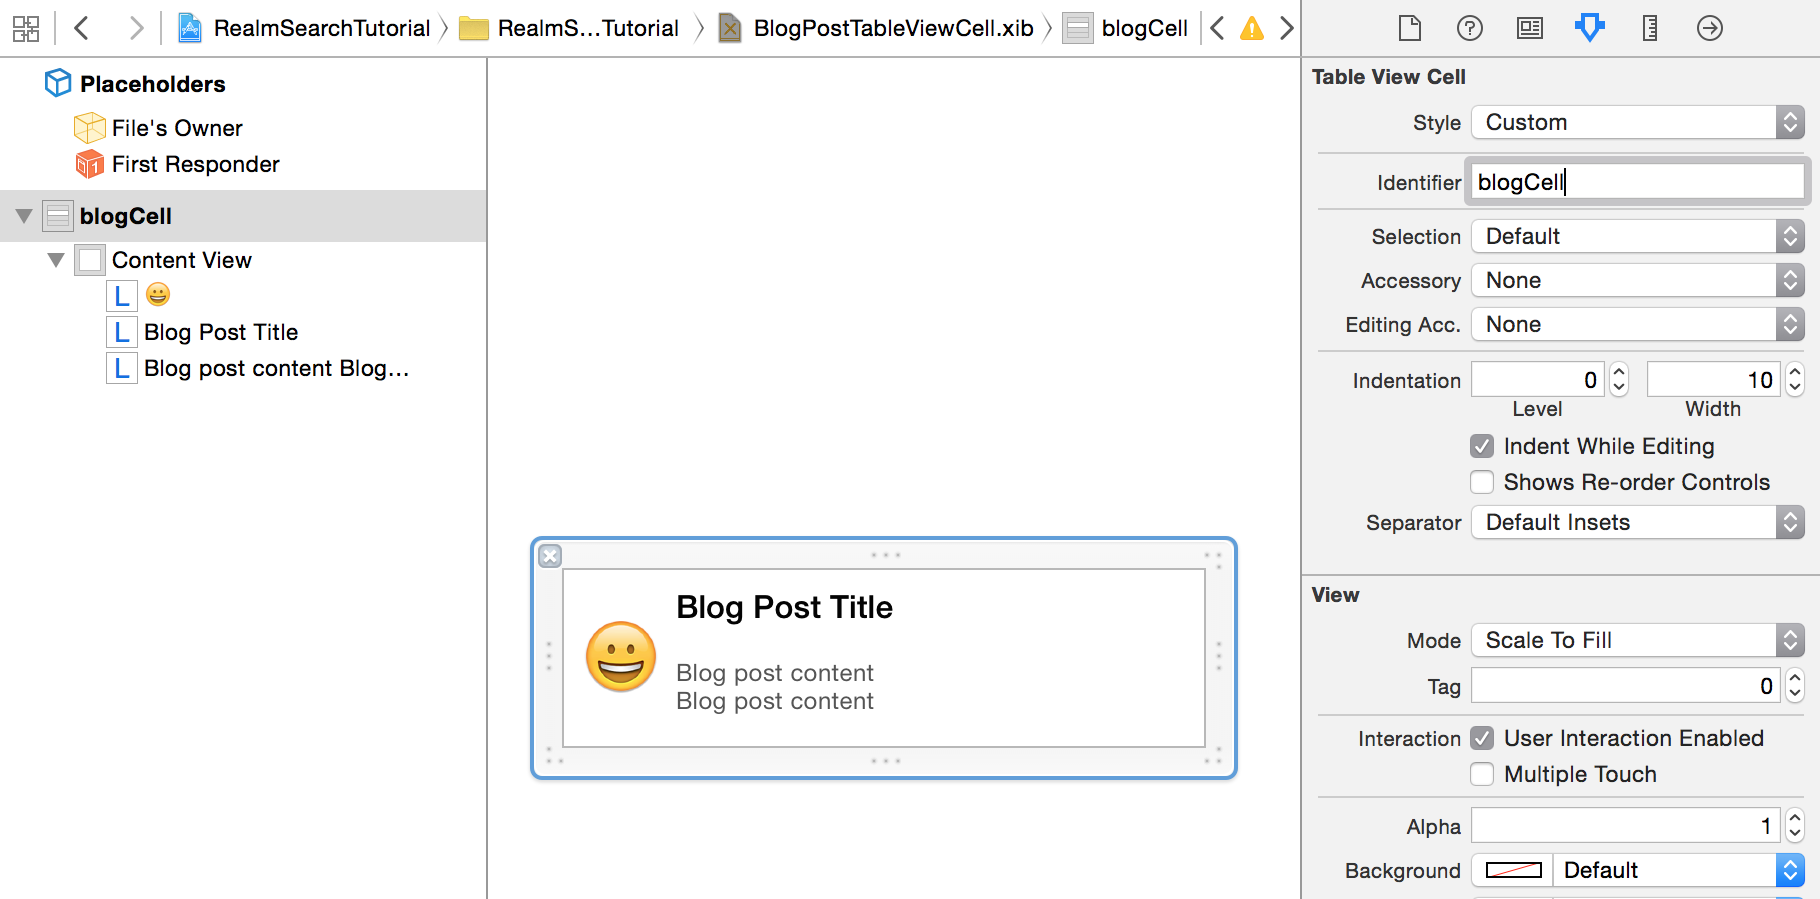 Create BlogPostTableViewCell UI